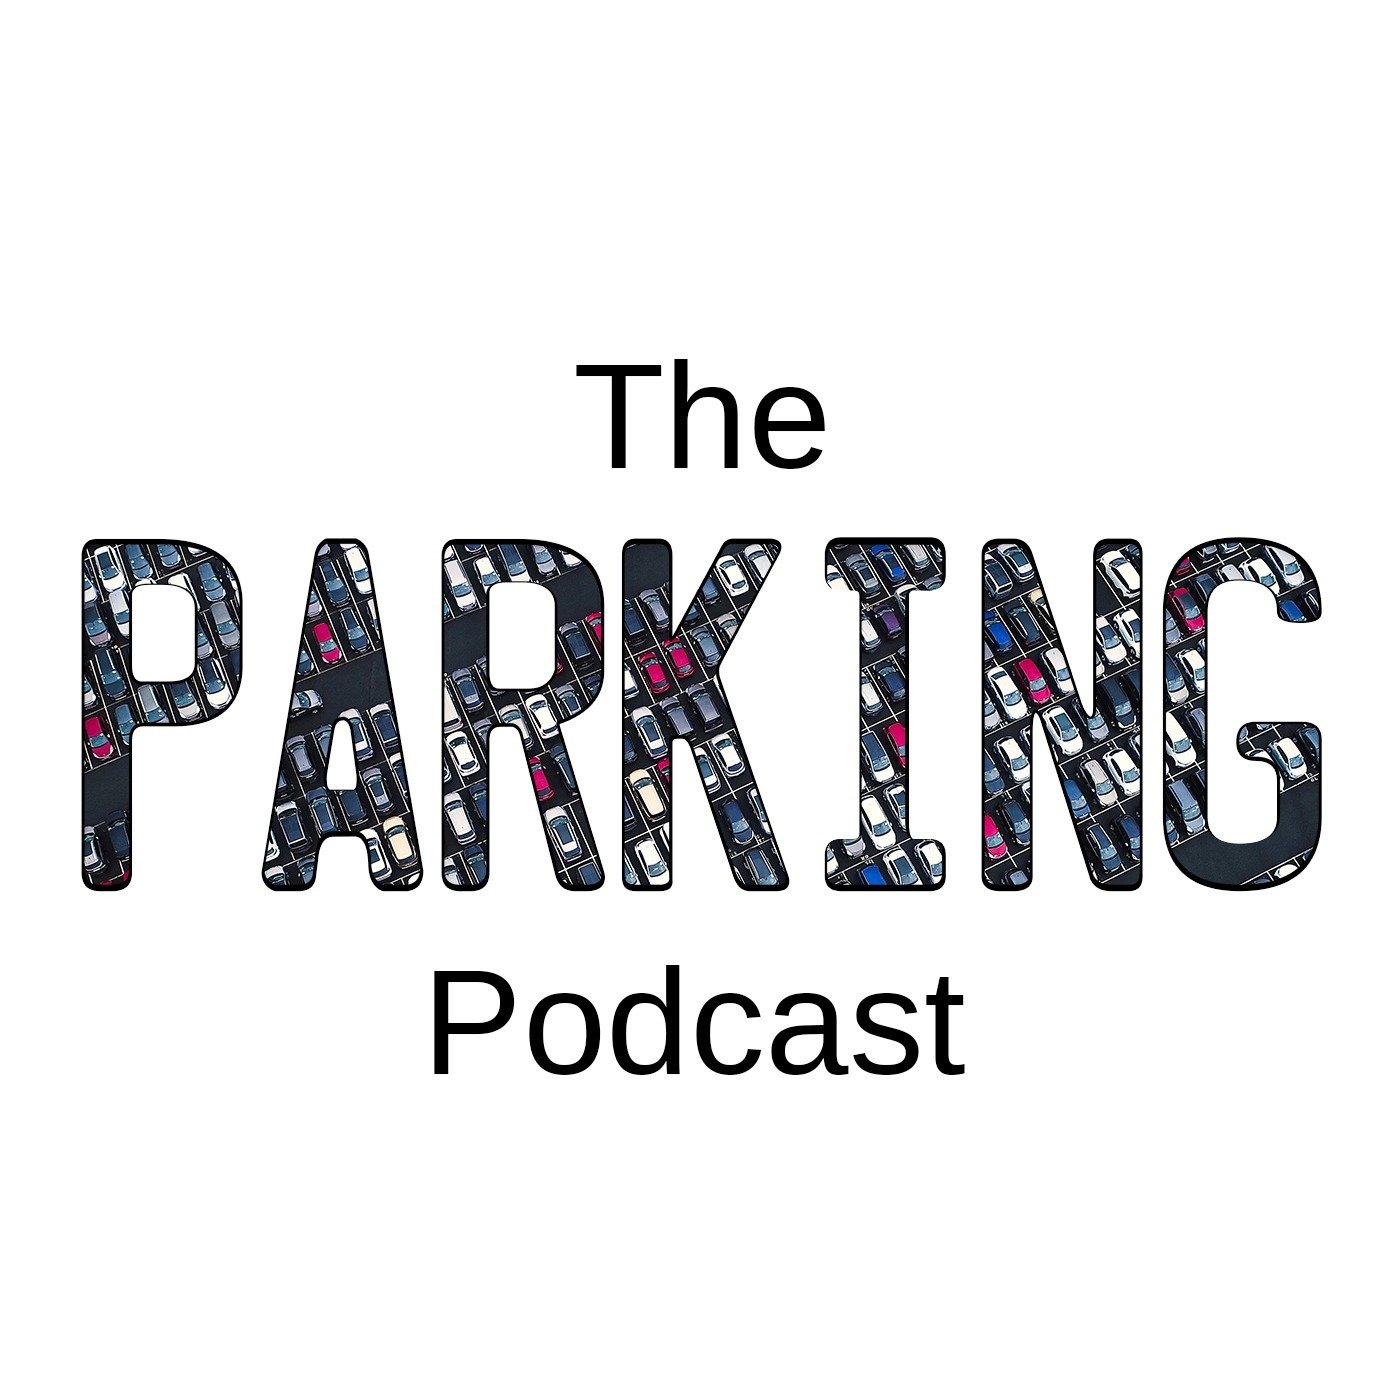 BONUS: An Interview with Mike Cataneo and a Conversation about the Parking Ticket Heard Around the World